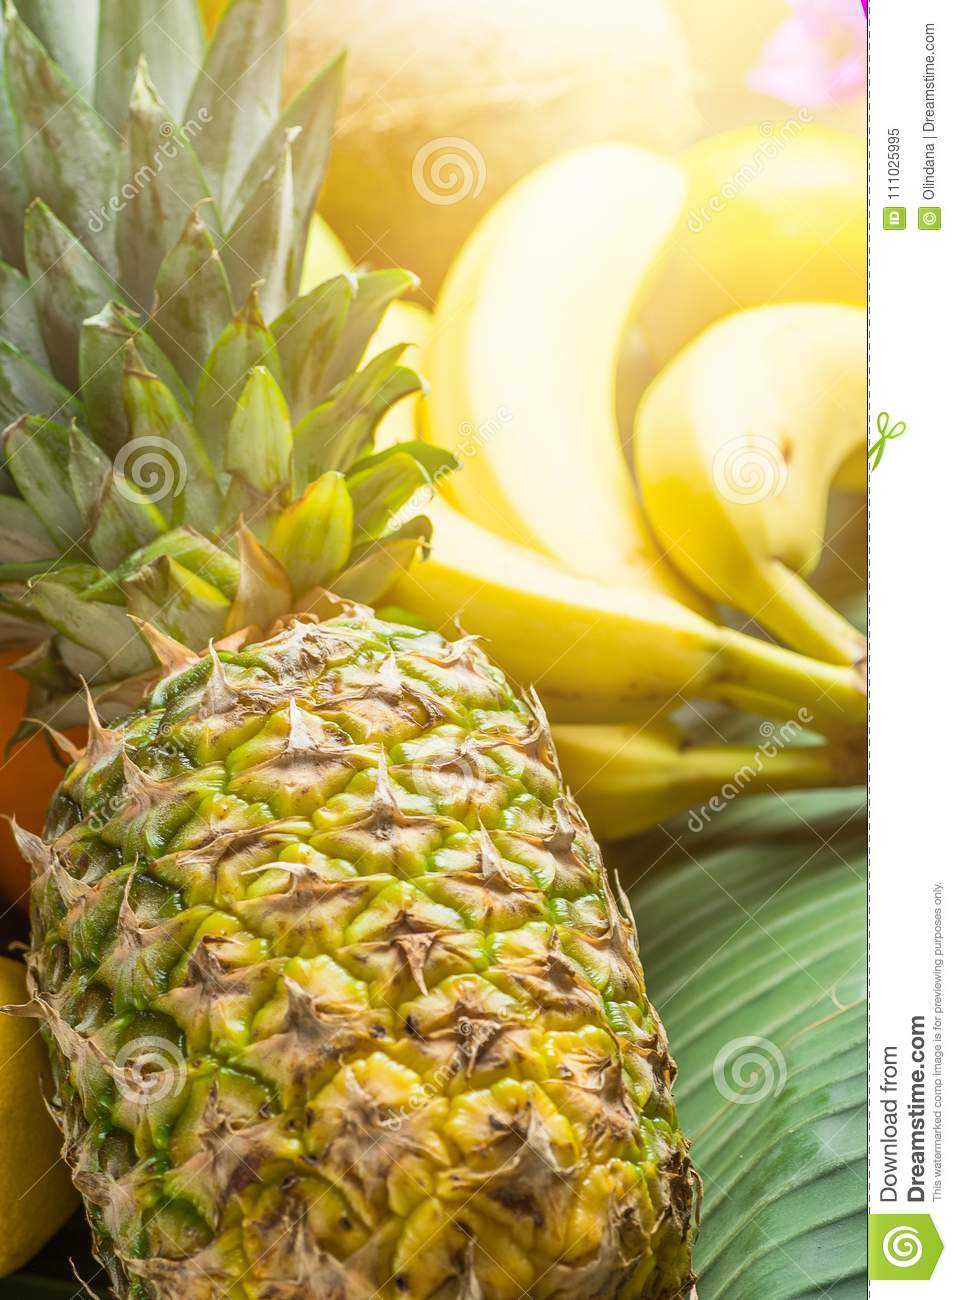 Variety of Different Tropical and Summer Fruits. Pineapple Mango Coconut Citrus Oranges Lemons Apples Kiwi Bananas on Palm Leaf